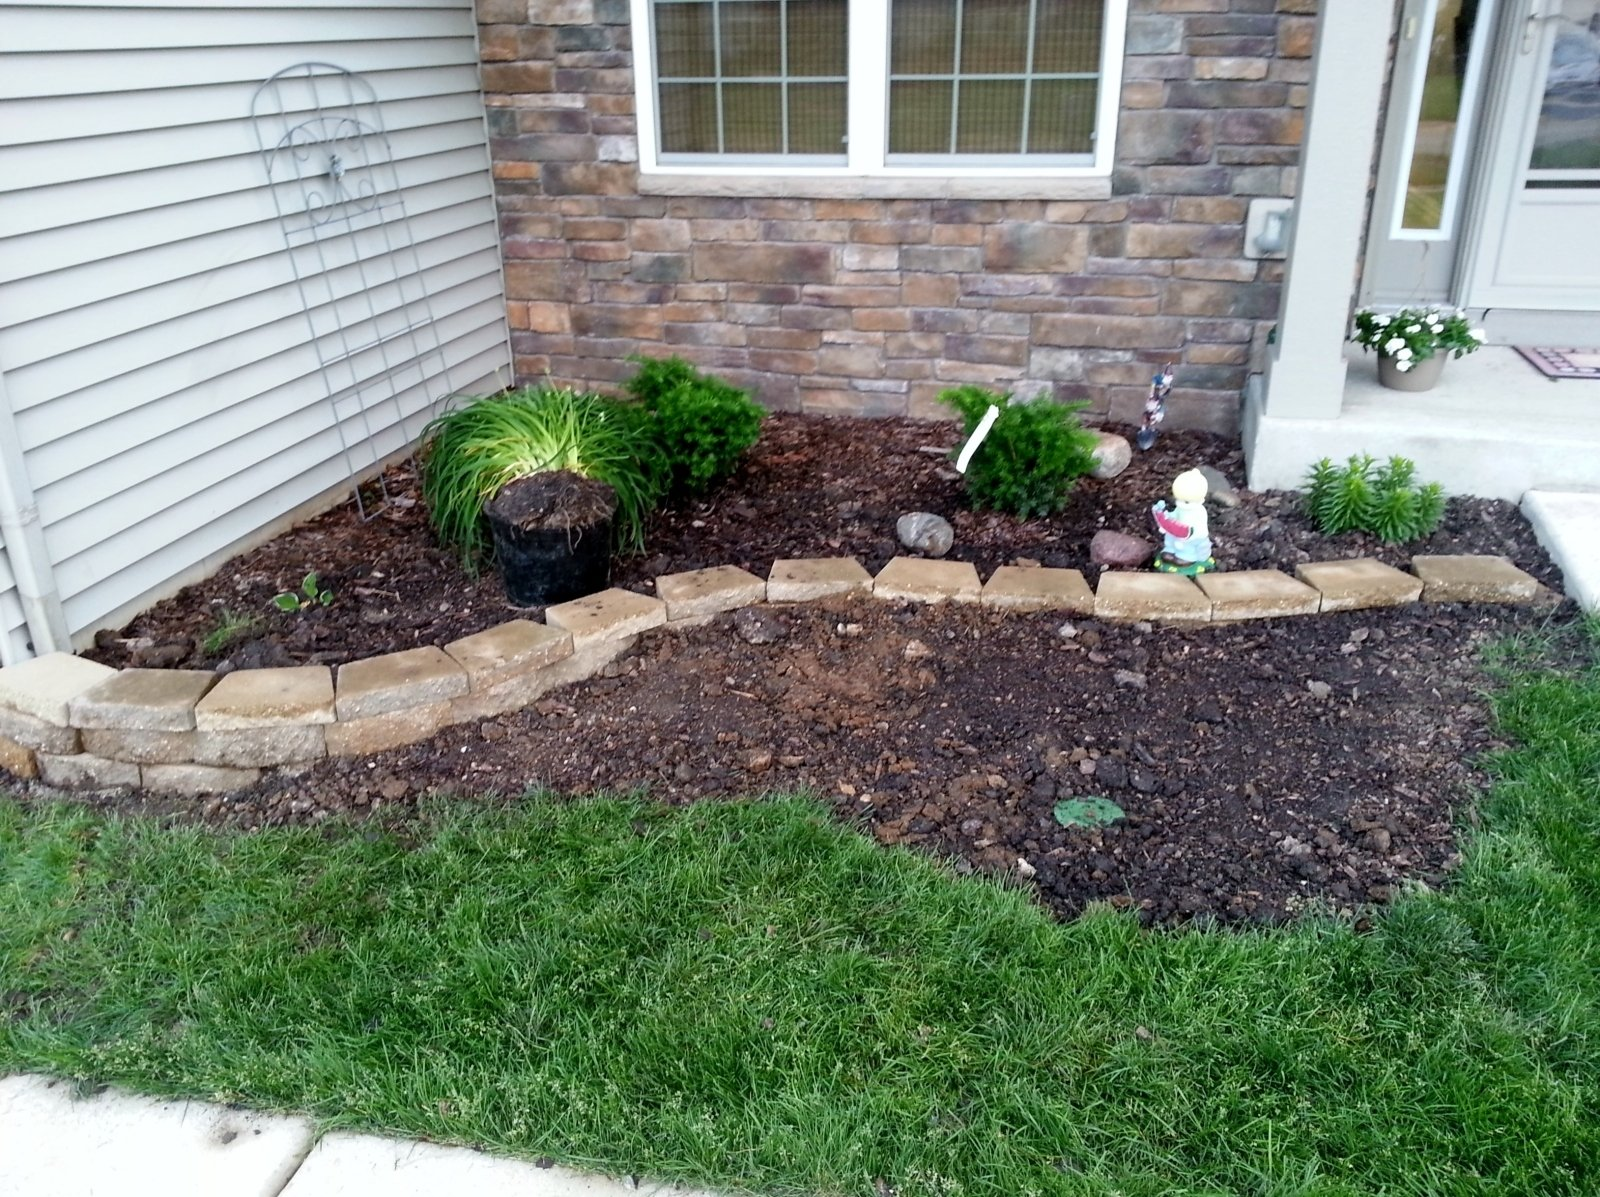 10 Attractive Simple Front Yard Landscaping Ideas Pictures top simple front yard landscaping ideas manitoba design easy and 1